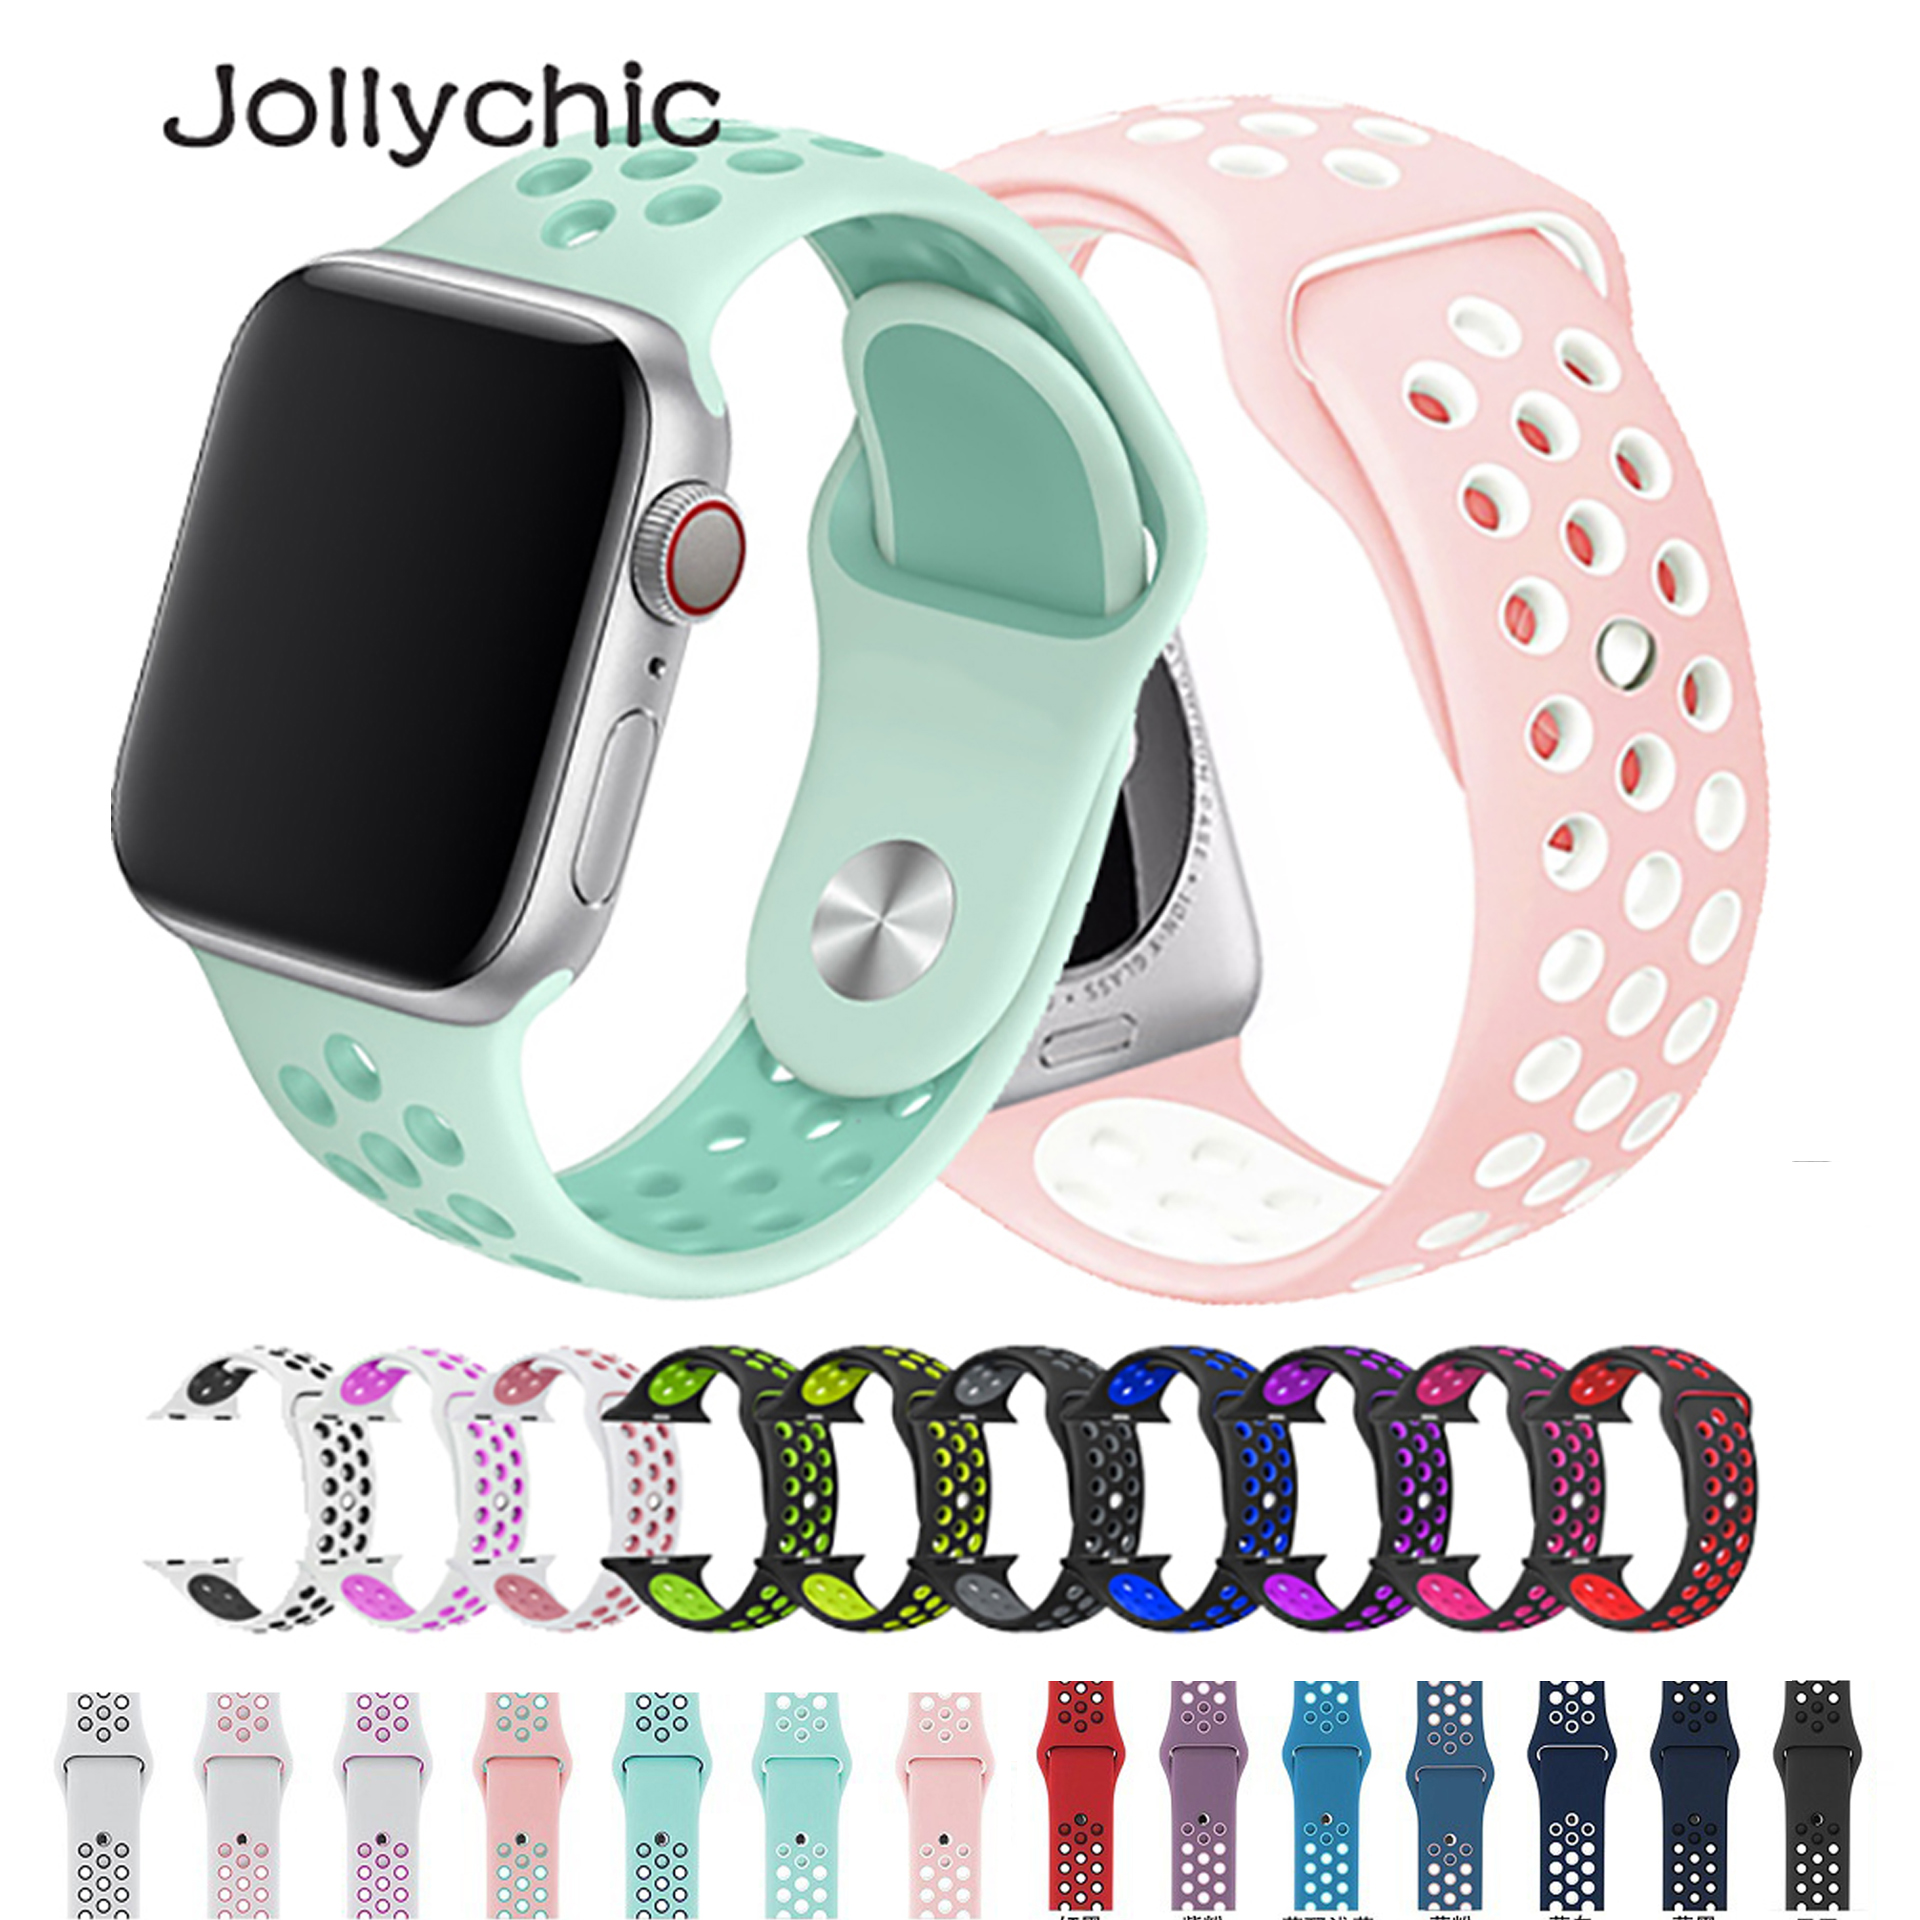 Strap For Apple Watch 4 3 2 1 Band 38mm 40mm Silicone Bracelet  42mm 44mm Strap Rubber Iwatch 4 3 2 Band Wristbands